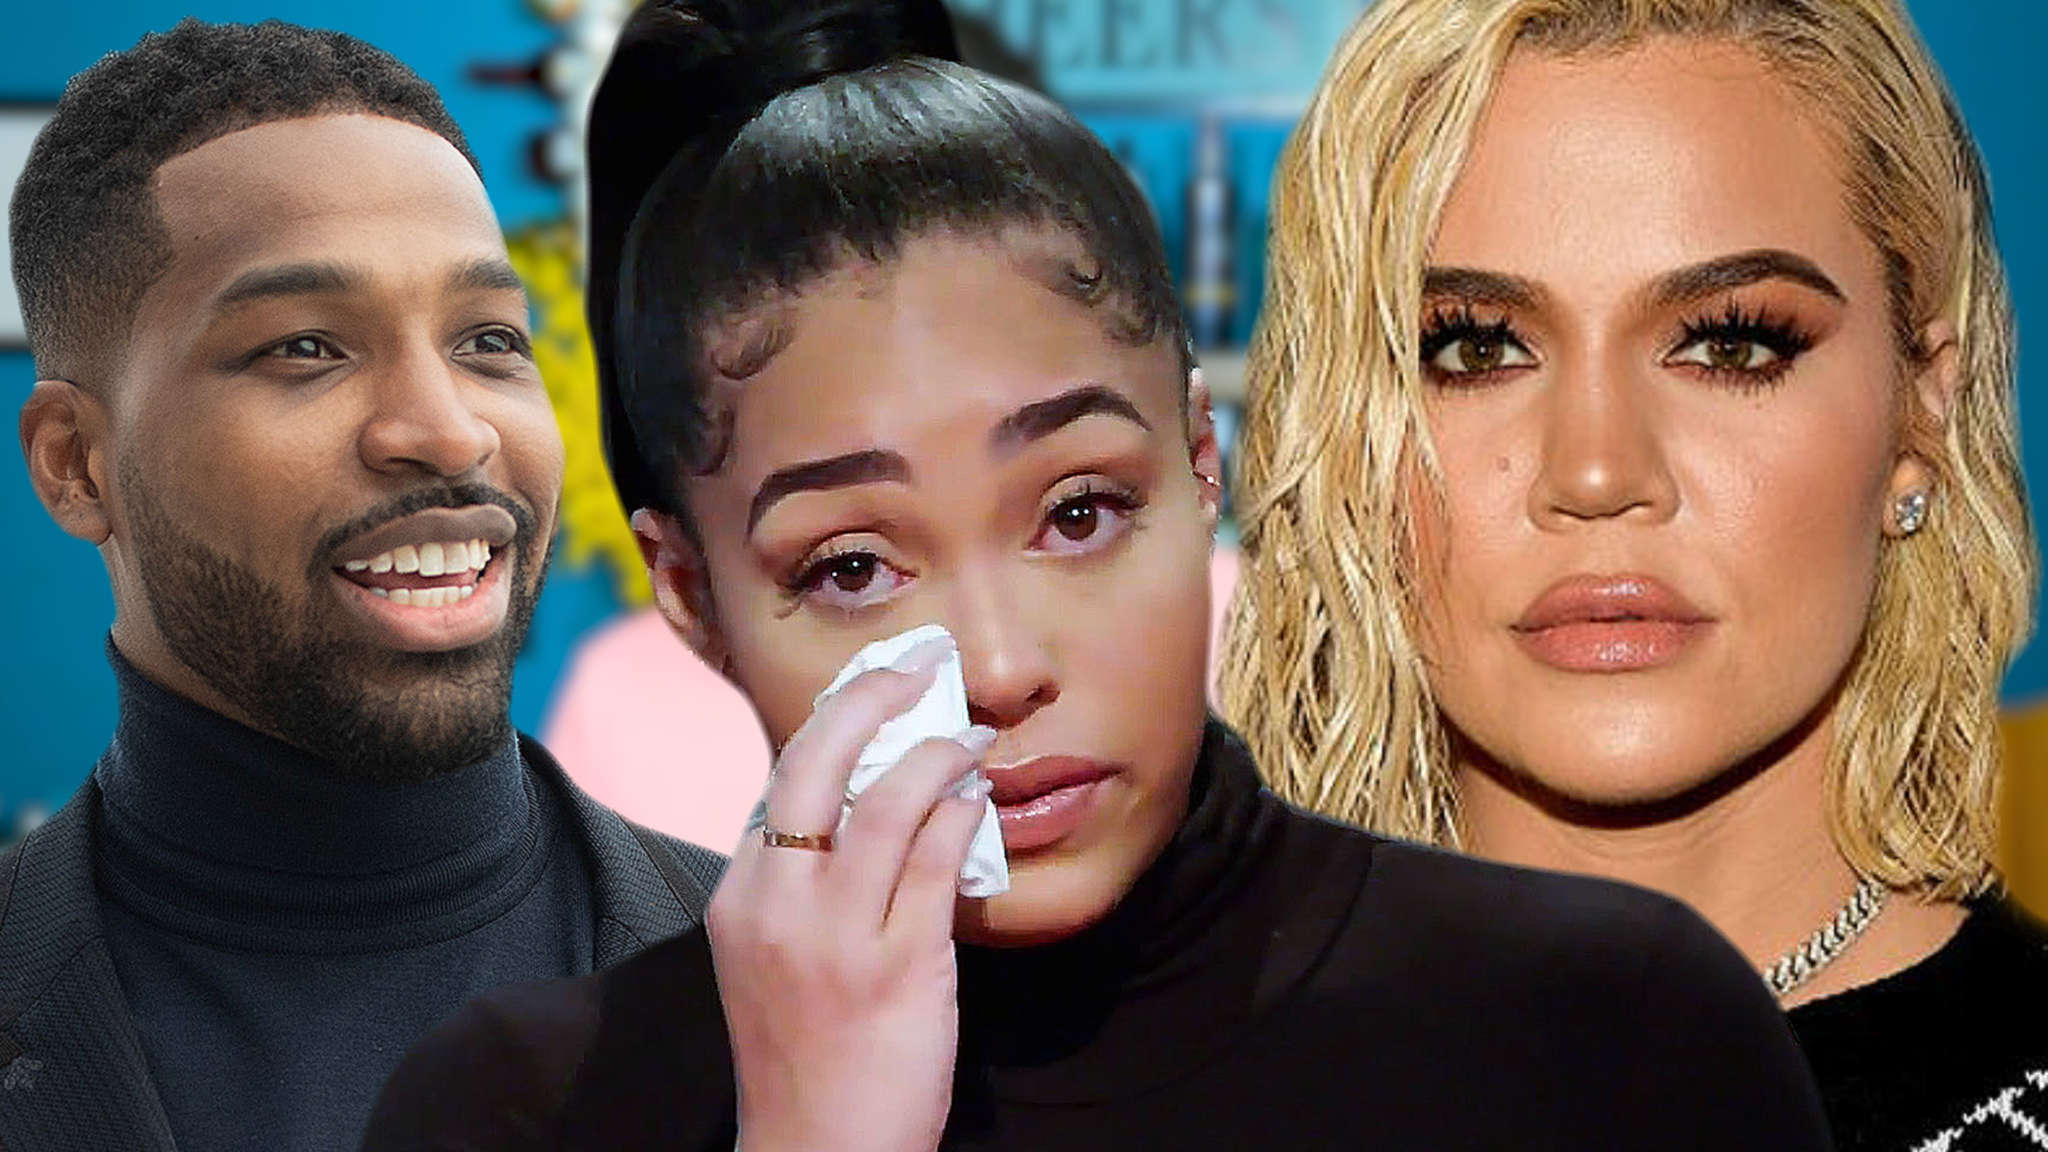 Khloe Kardashian Said Jordyn Woods Never Apologized After Making Out With Tristan Thompson